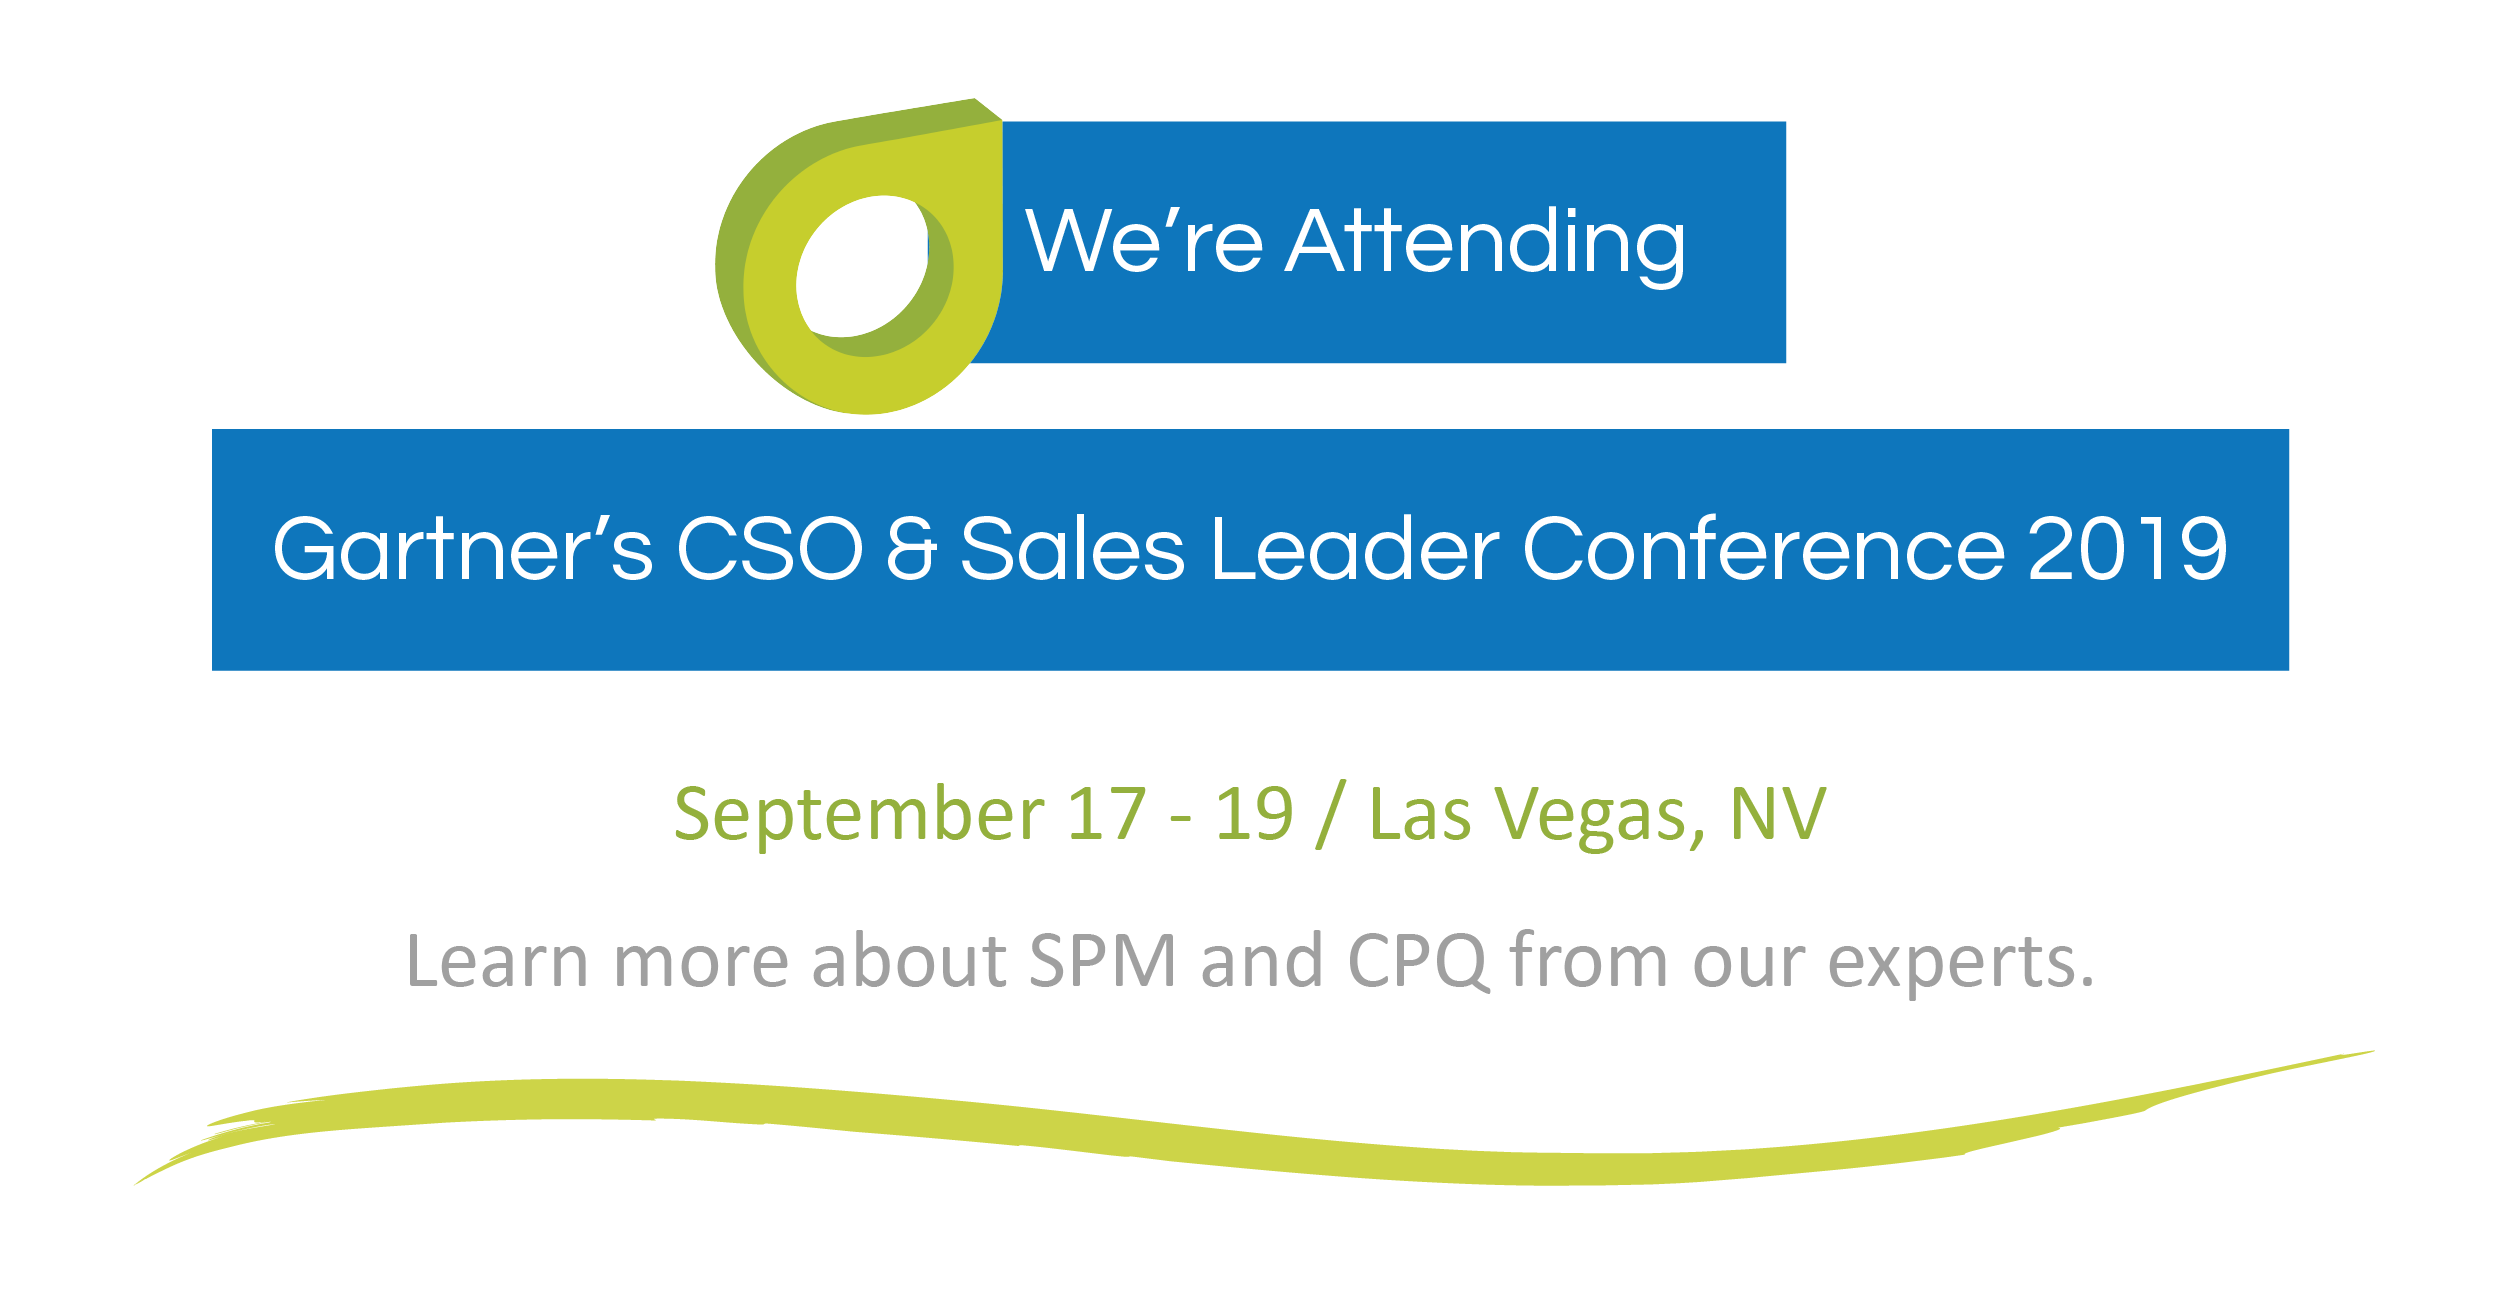 Why Morgan Cosentino is attending the Gartner CSO & Sales Leader Conference